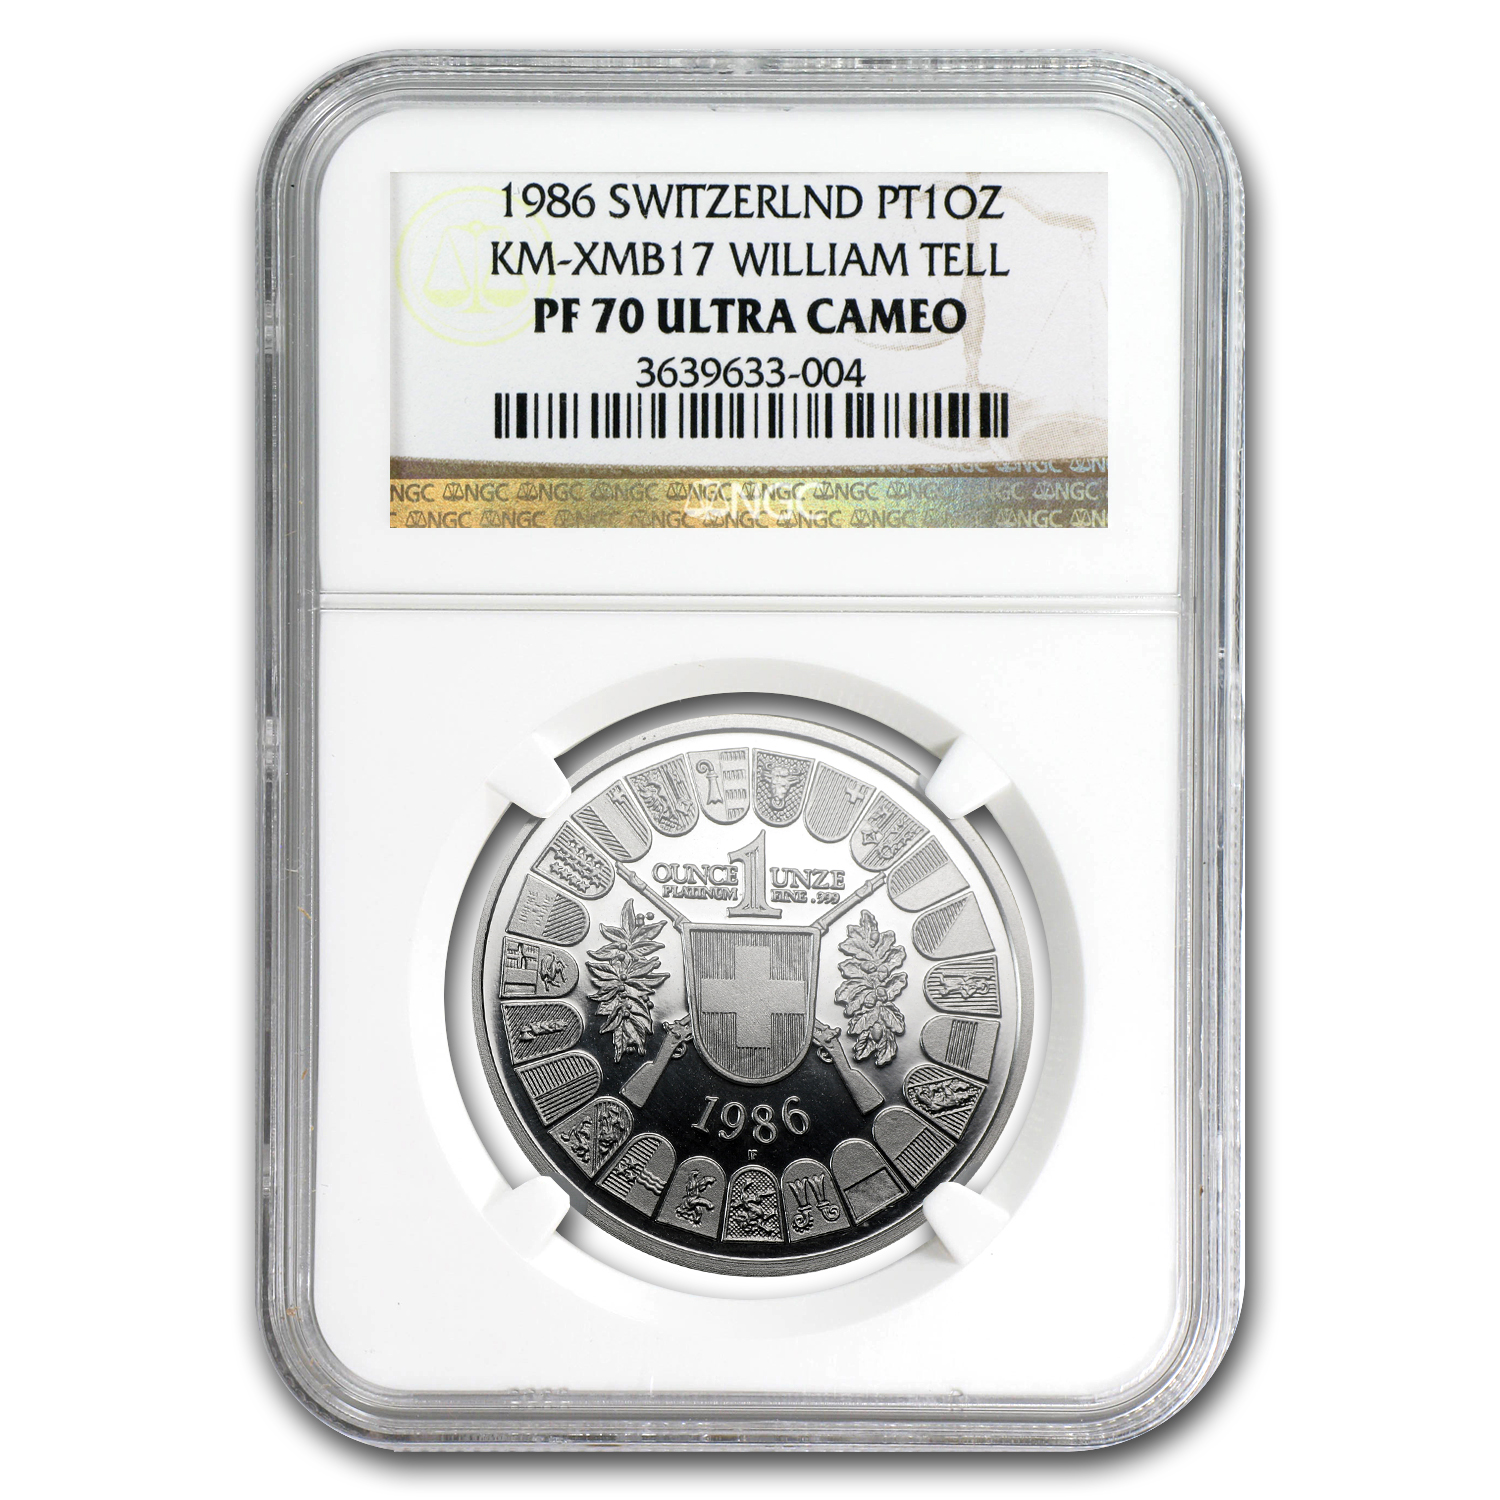 1986 Switzerland 1 oz Proof Platinum Shooting Thaler PF-70 NGC